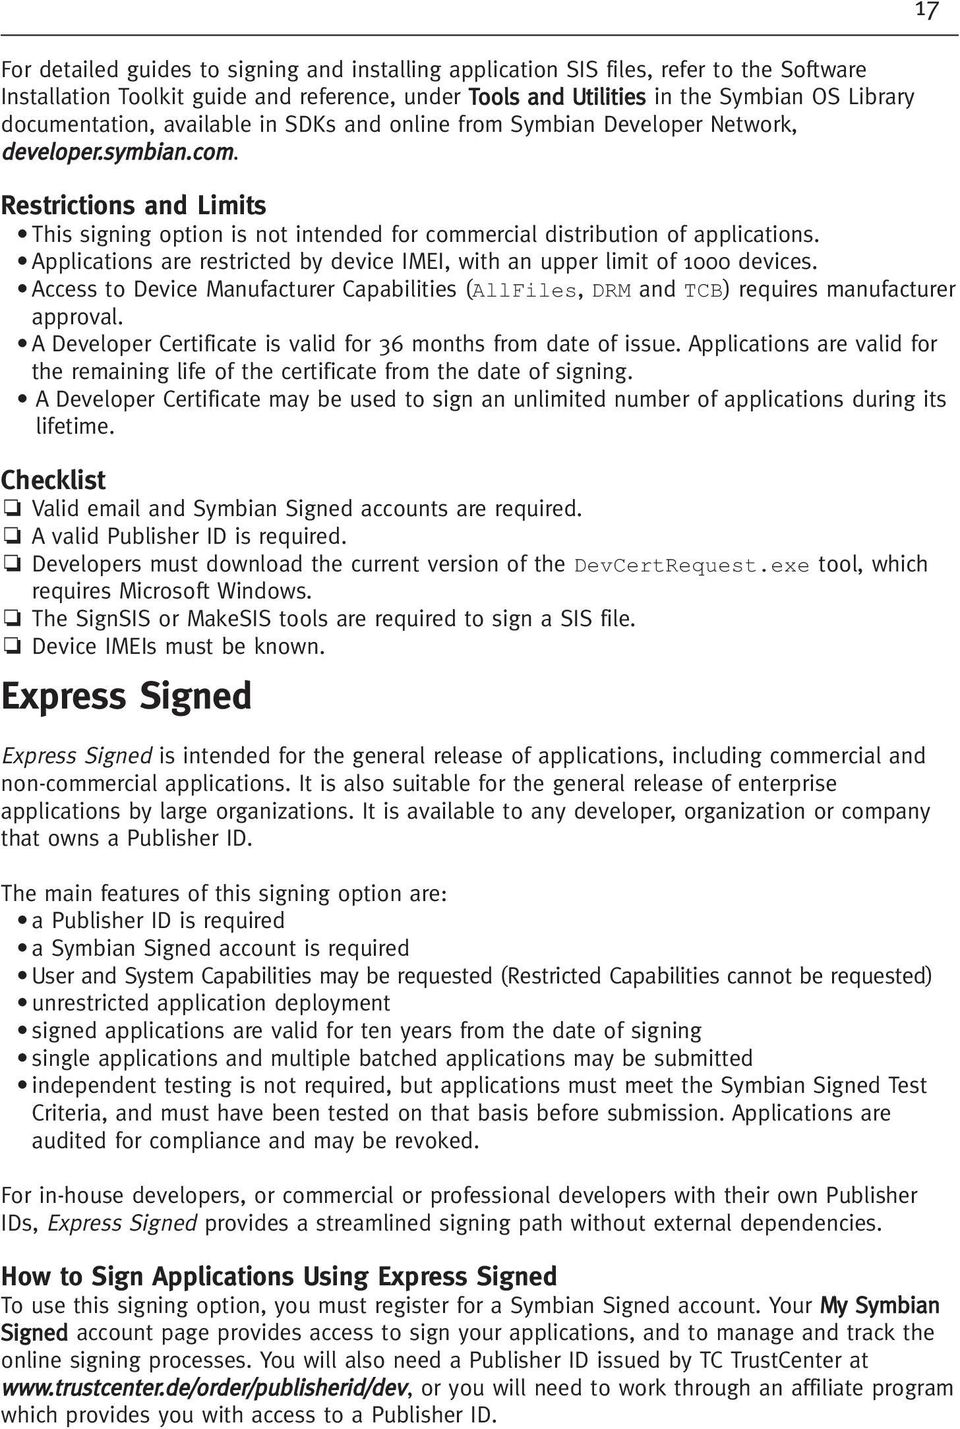 A guide to  Symbian Signed - PDF